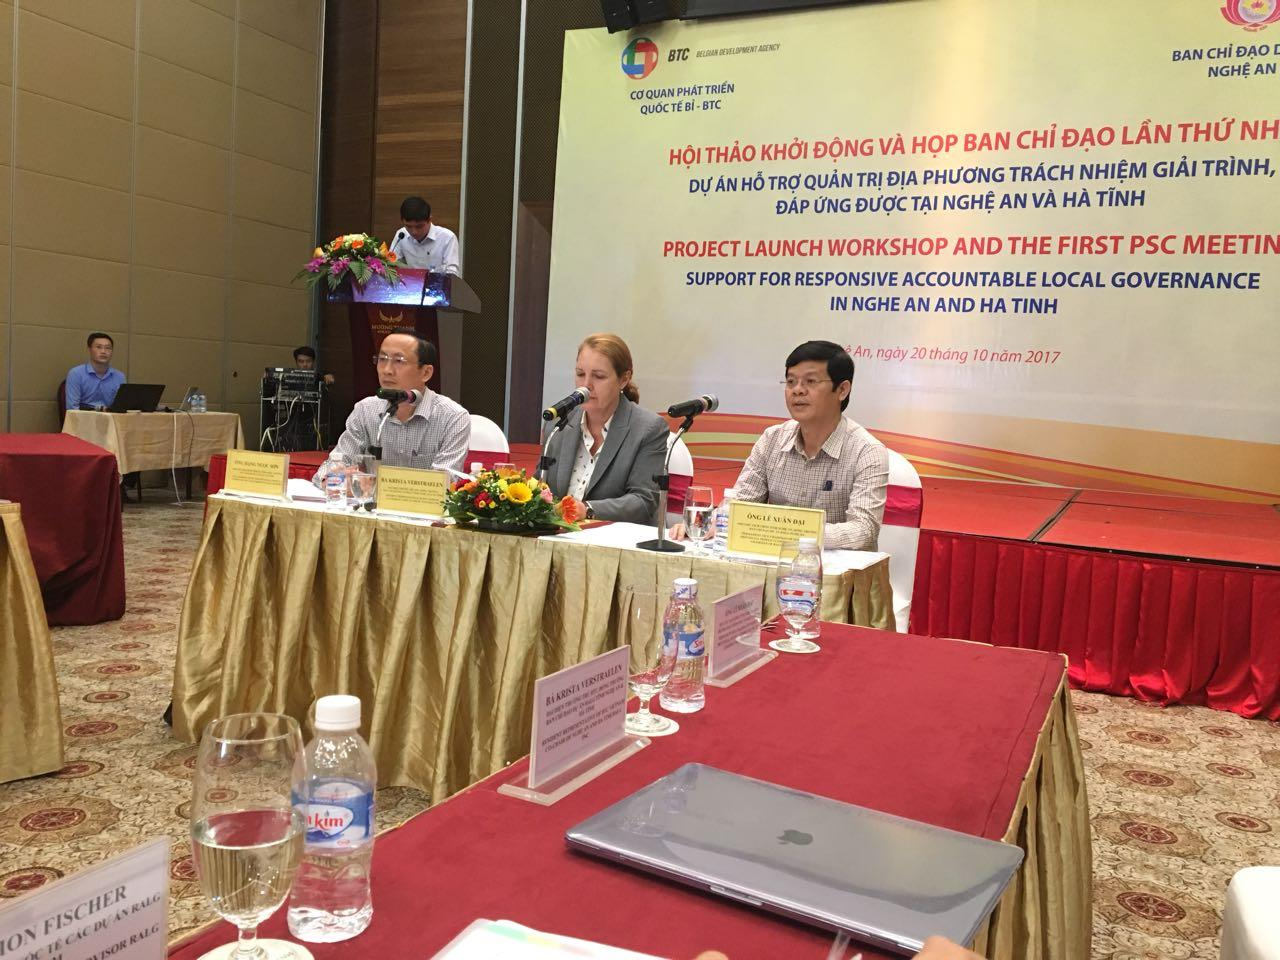 Support for responsive accountable local governance in Nghe An Province, Vietnam